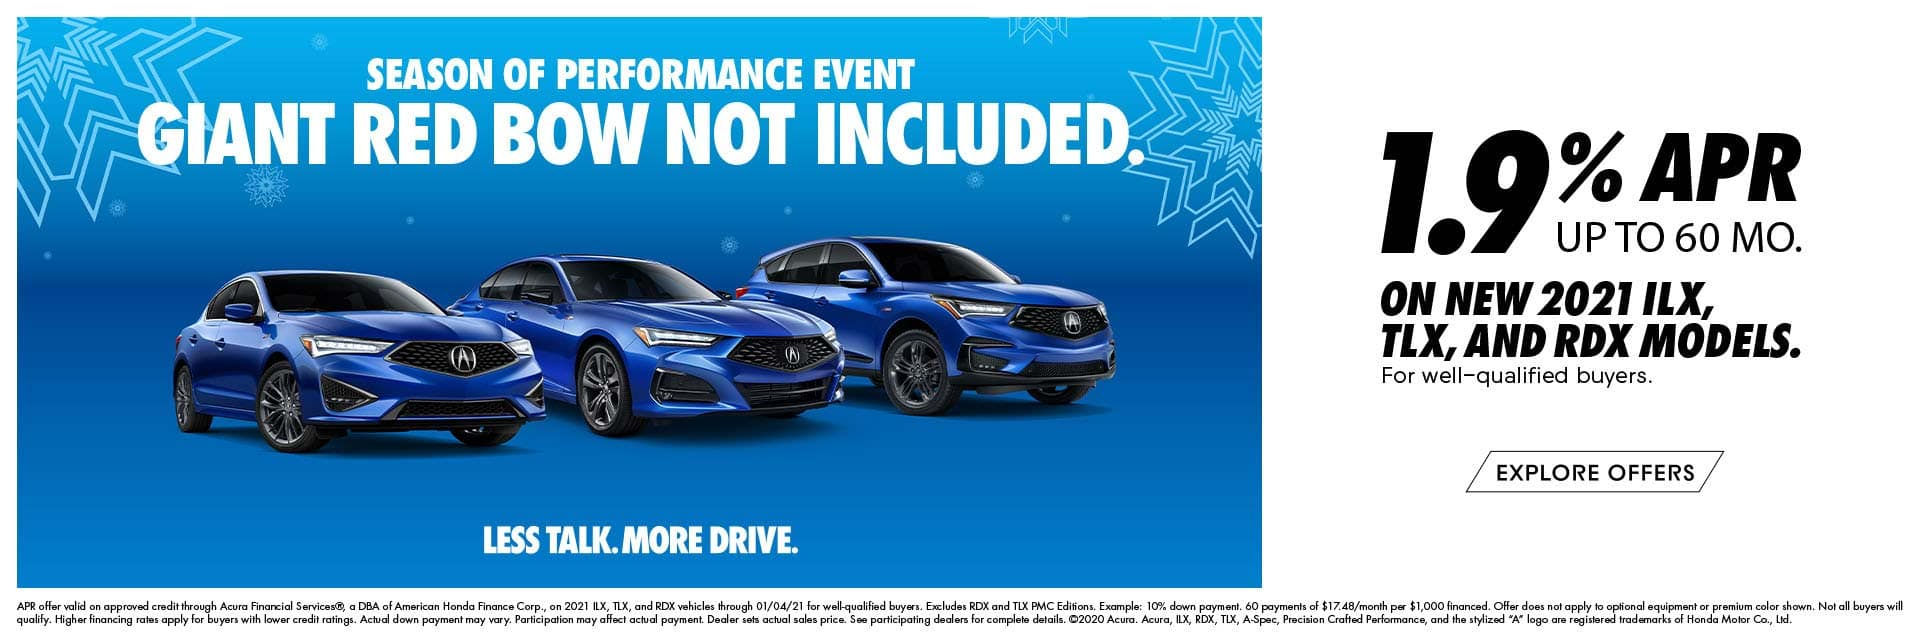 1.9% APR for up to 60 mo. on 2021 Acura ILX, TLX and RDX